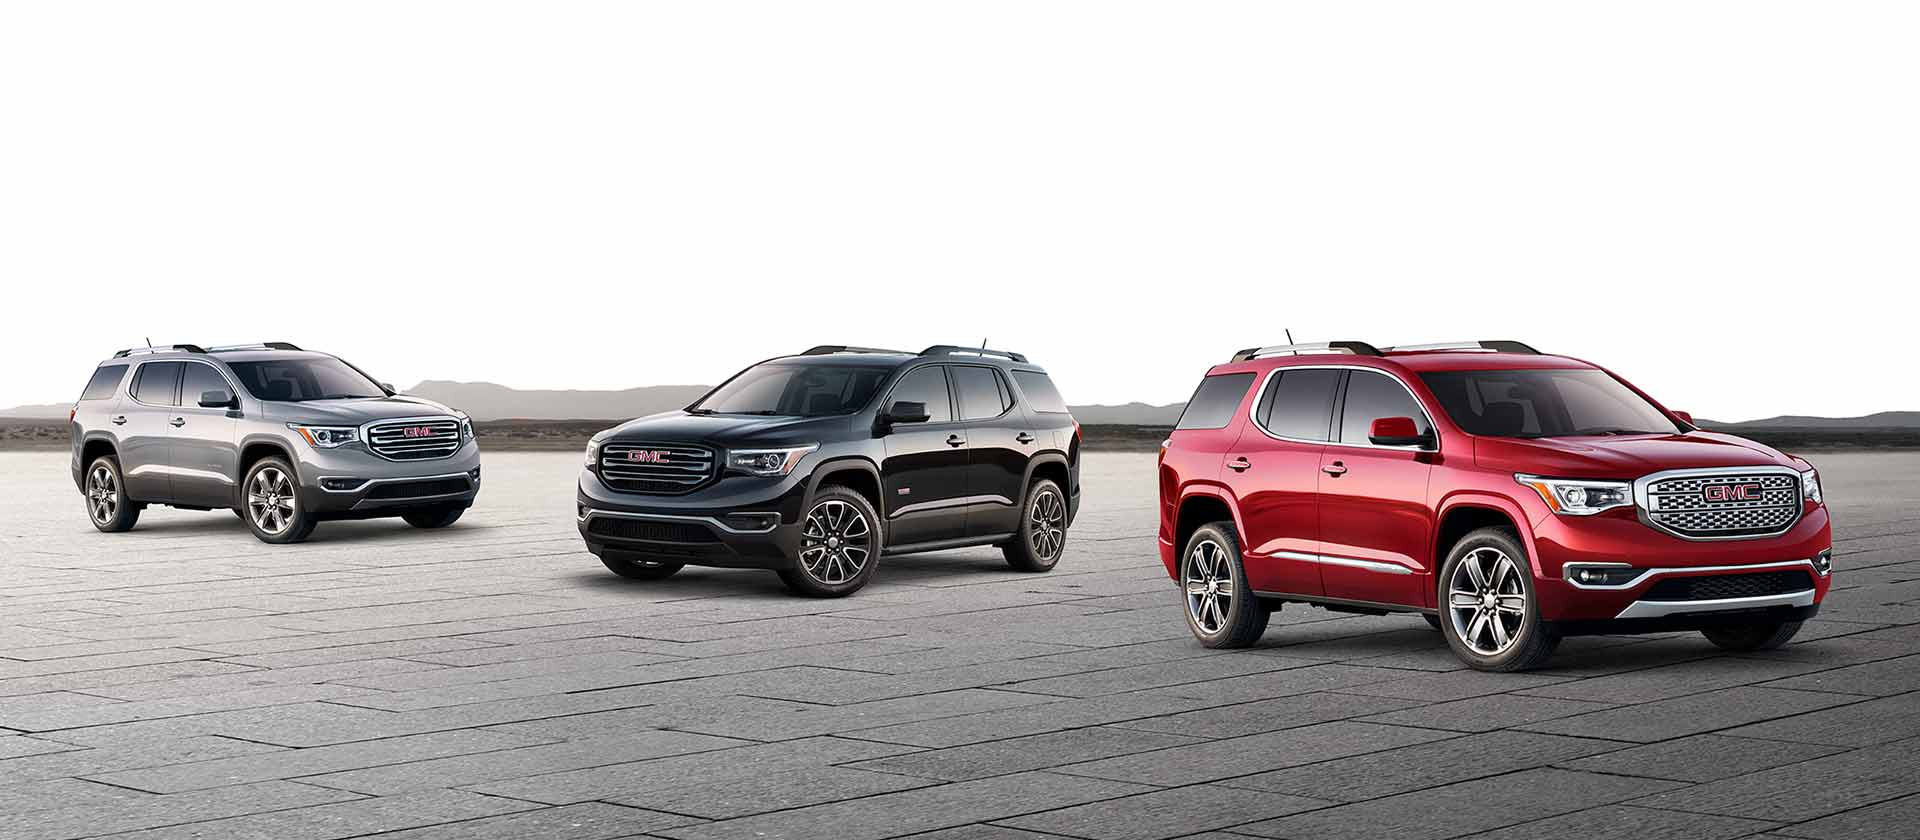 2018 GMC Acadia Overview - The News Wheel